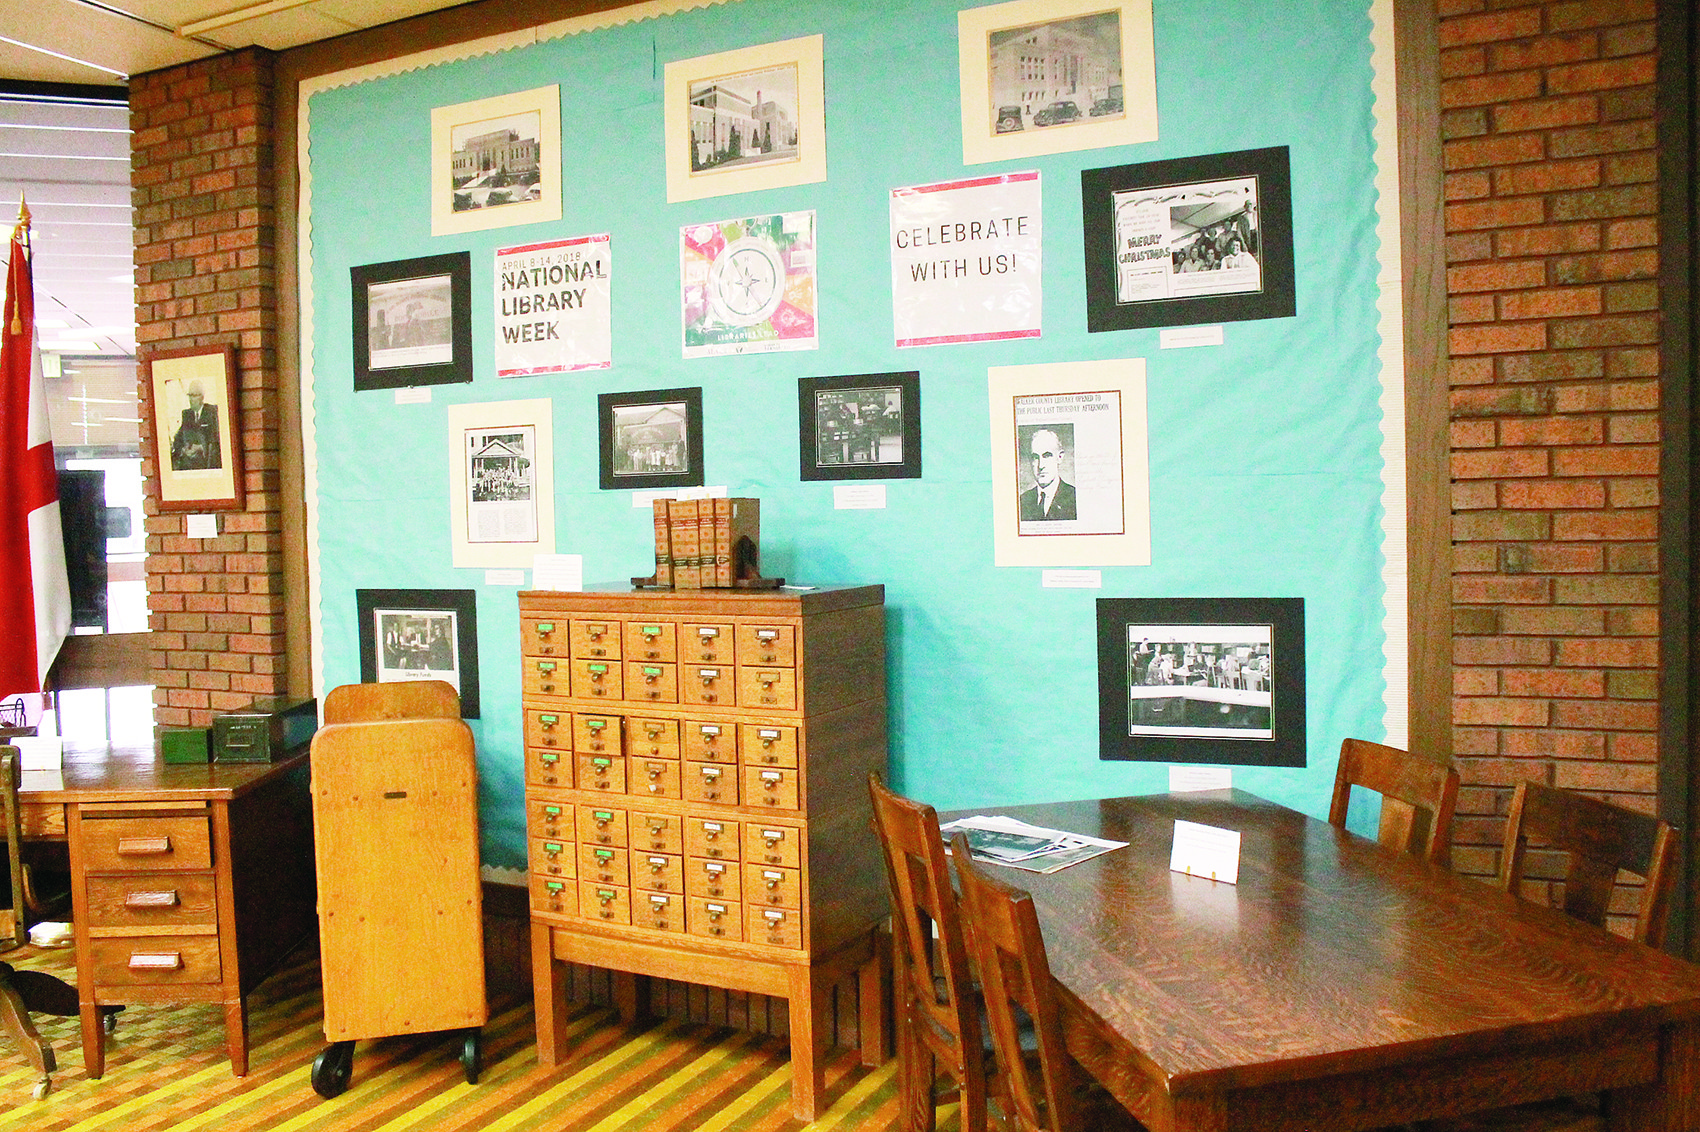 The Jasper Public Library has several historical artifacts on display through the end of the month. The display includes a complete card catalog, which was discontinued after the library moved to a digital catalog in 2009, and a desk used by former Walker County Library and Carl Elliott Regional Library System director Elizabeth Wiggins.